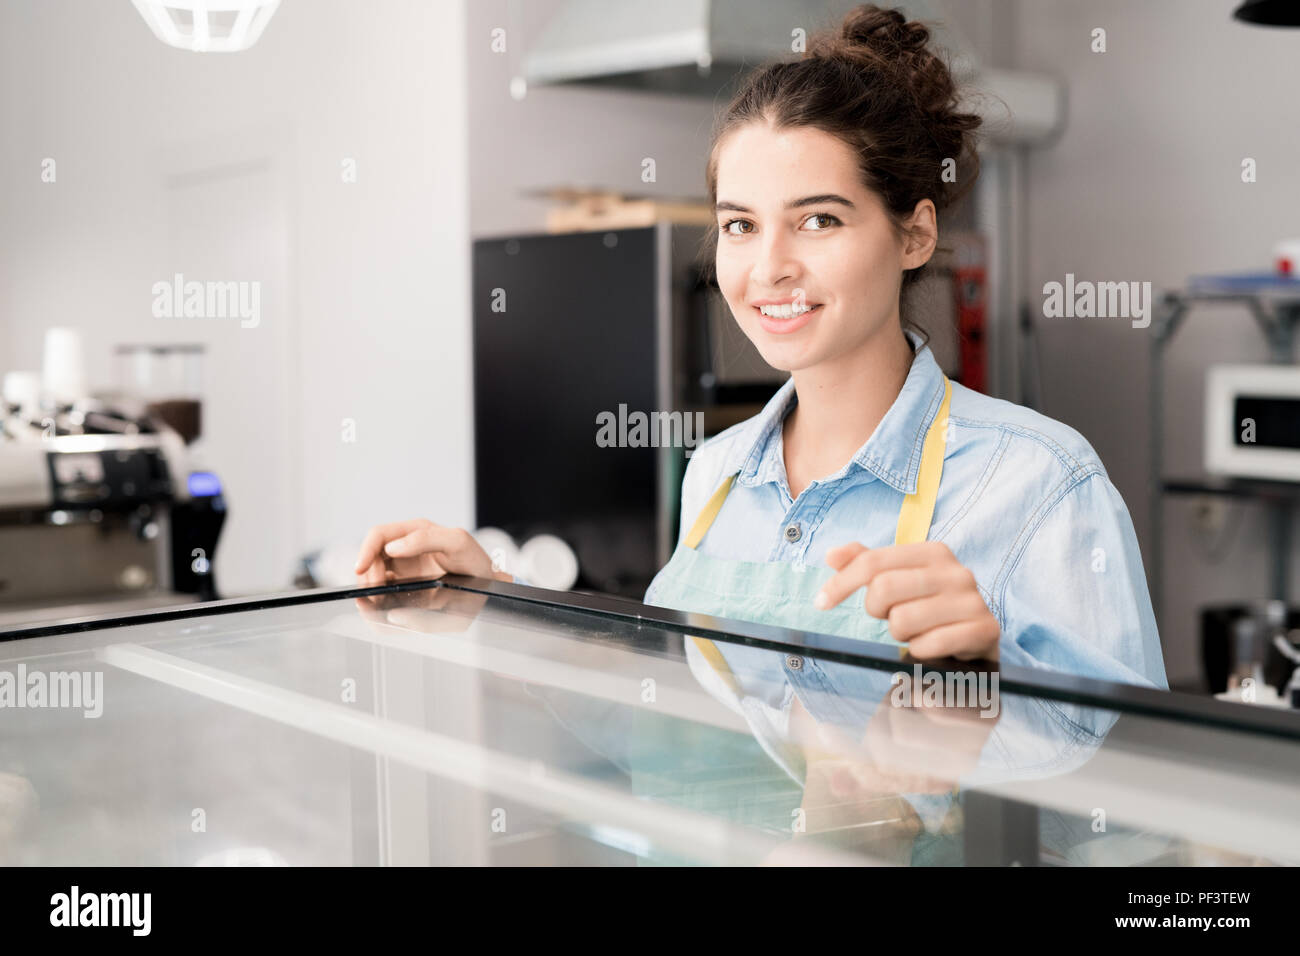 Smiling Woman Working in Cafe - Stock Image